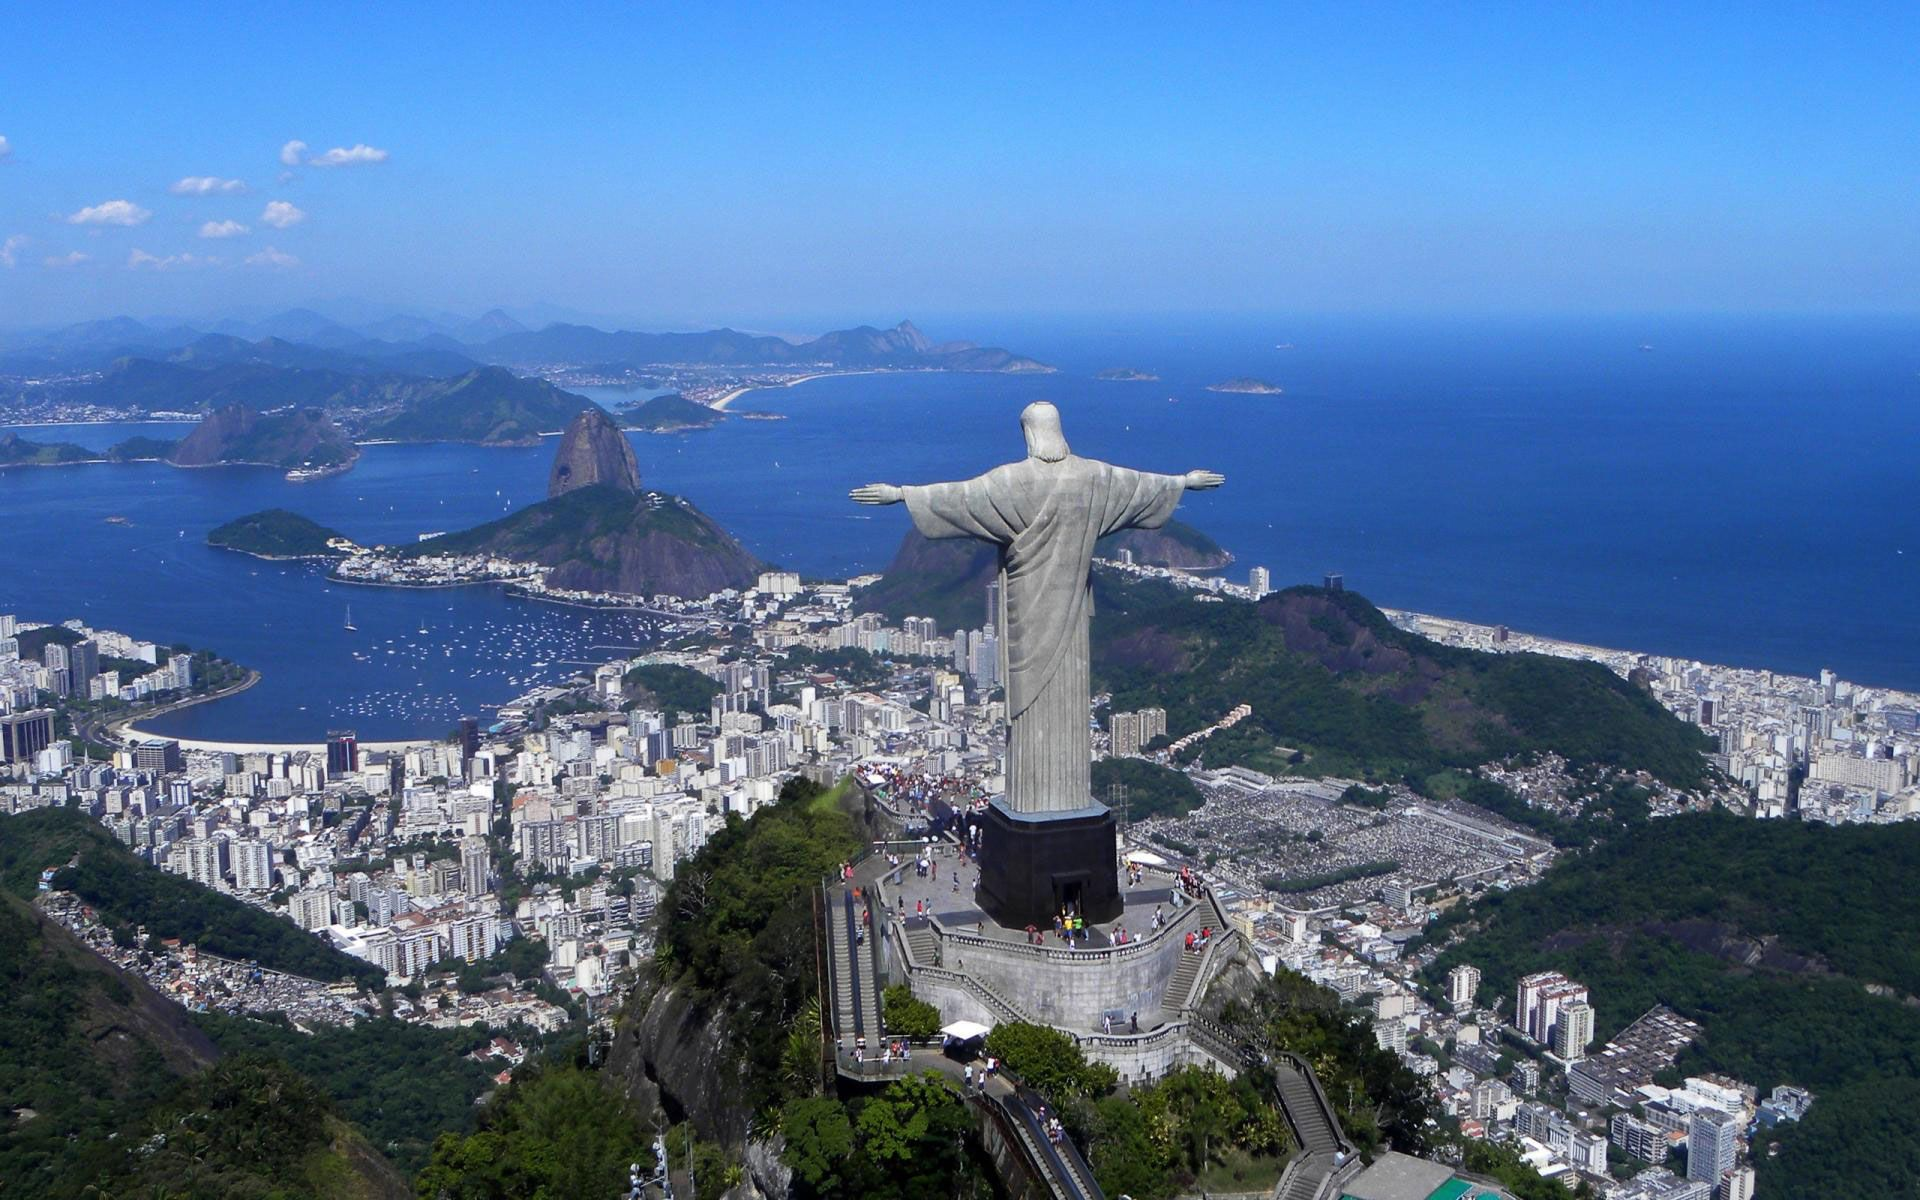 Statue Of Jesus City Rio De Janeiro Hd Wallpapers In Hd Wonders Of The World Christ The Redeemer Christ The Redeemer Statue